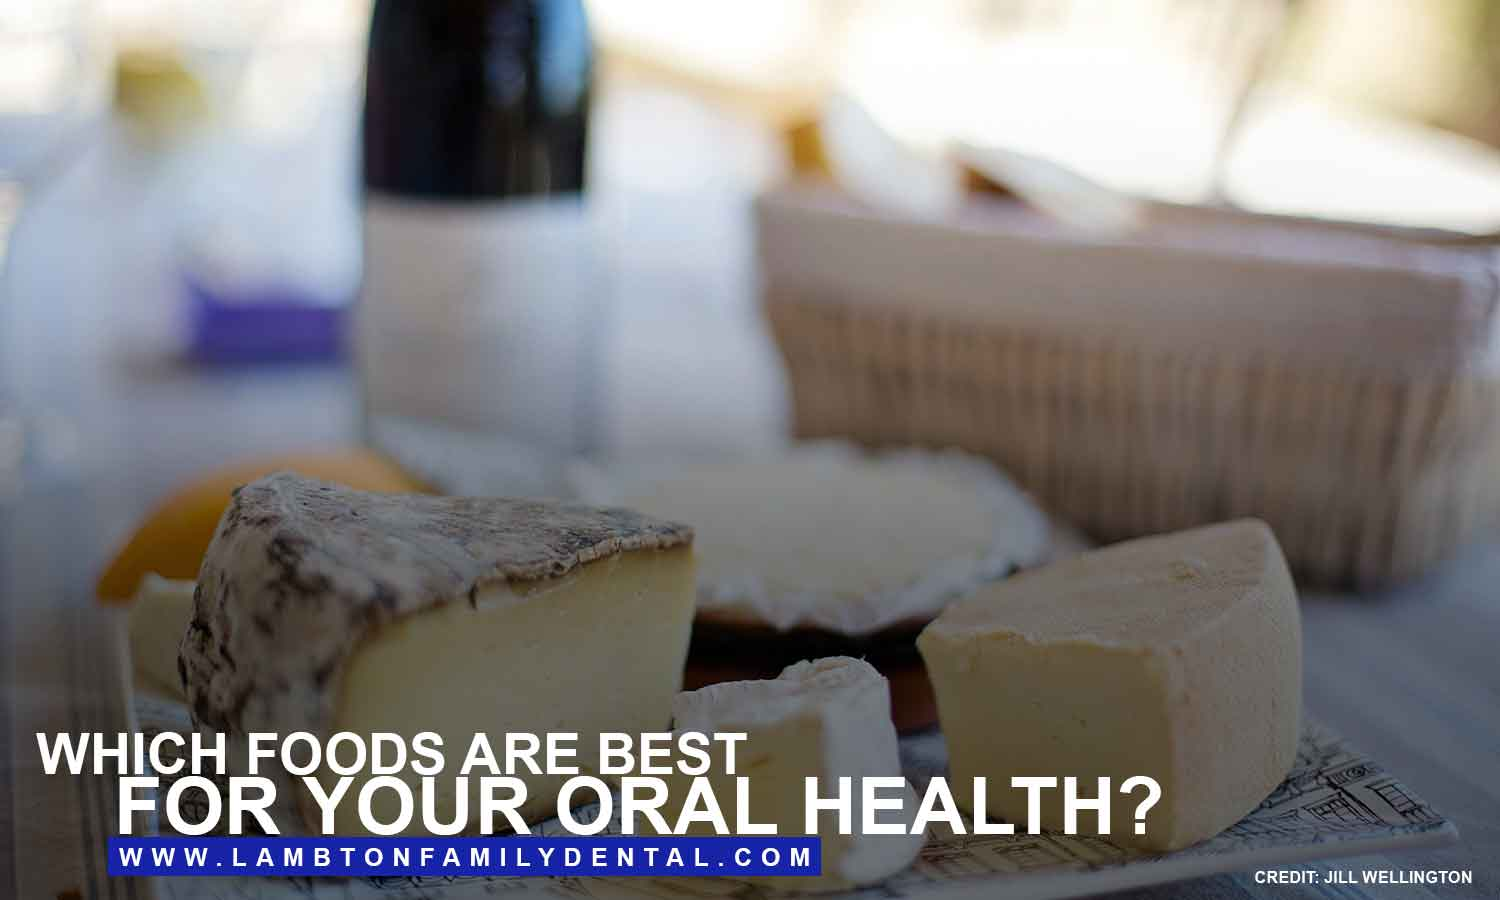 Which foods are best for your oral health